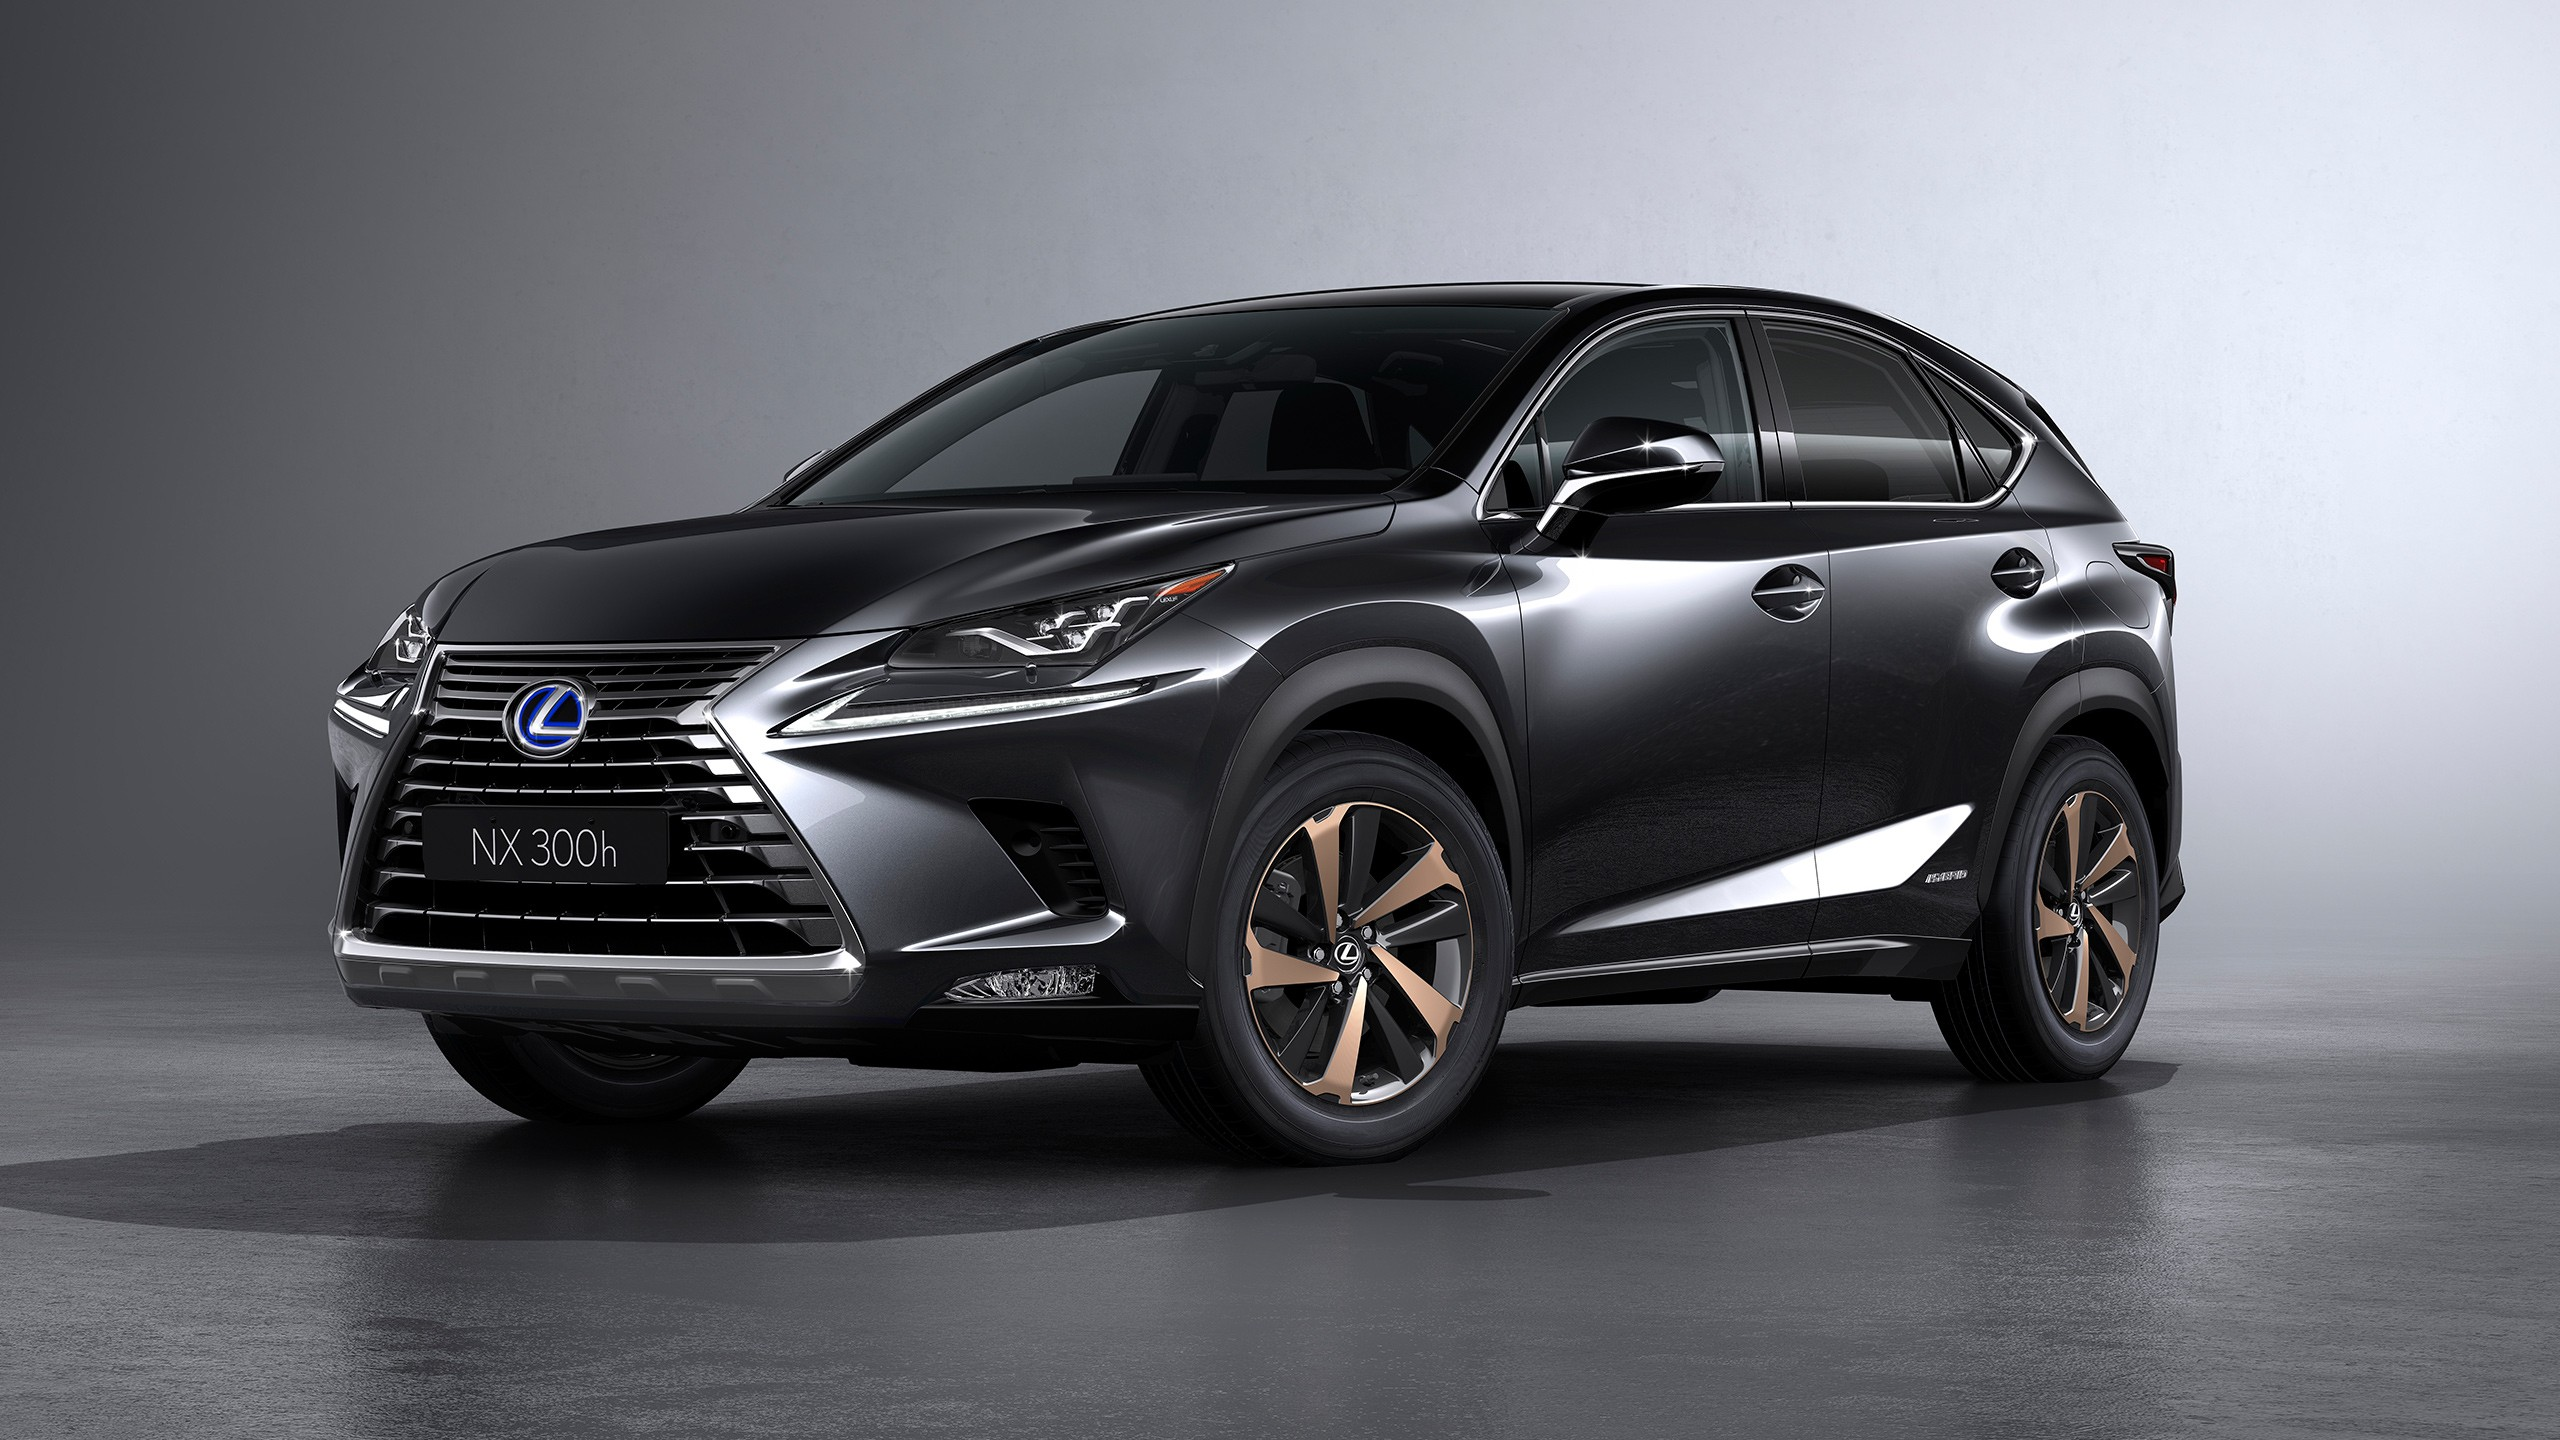 lexus nx luxury crossover 2017 wallpaper hd car wallpapers. Black Bedroom Furniture Sets. Home Design Ideas